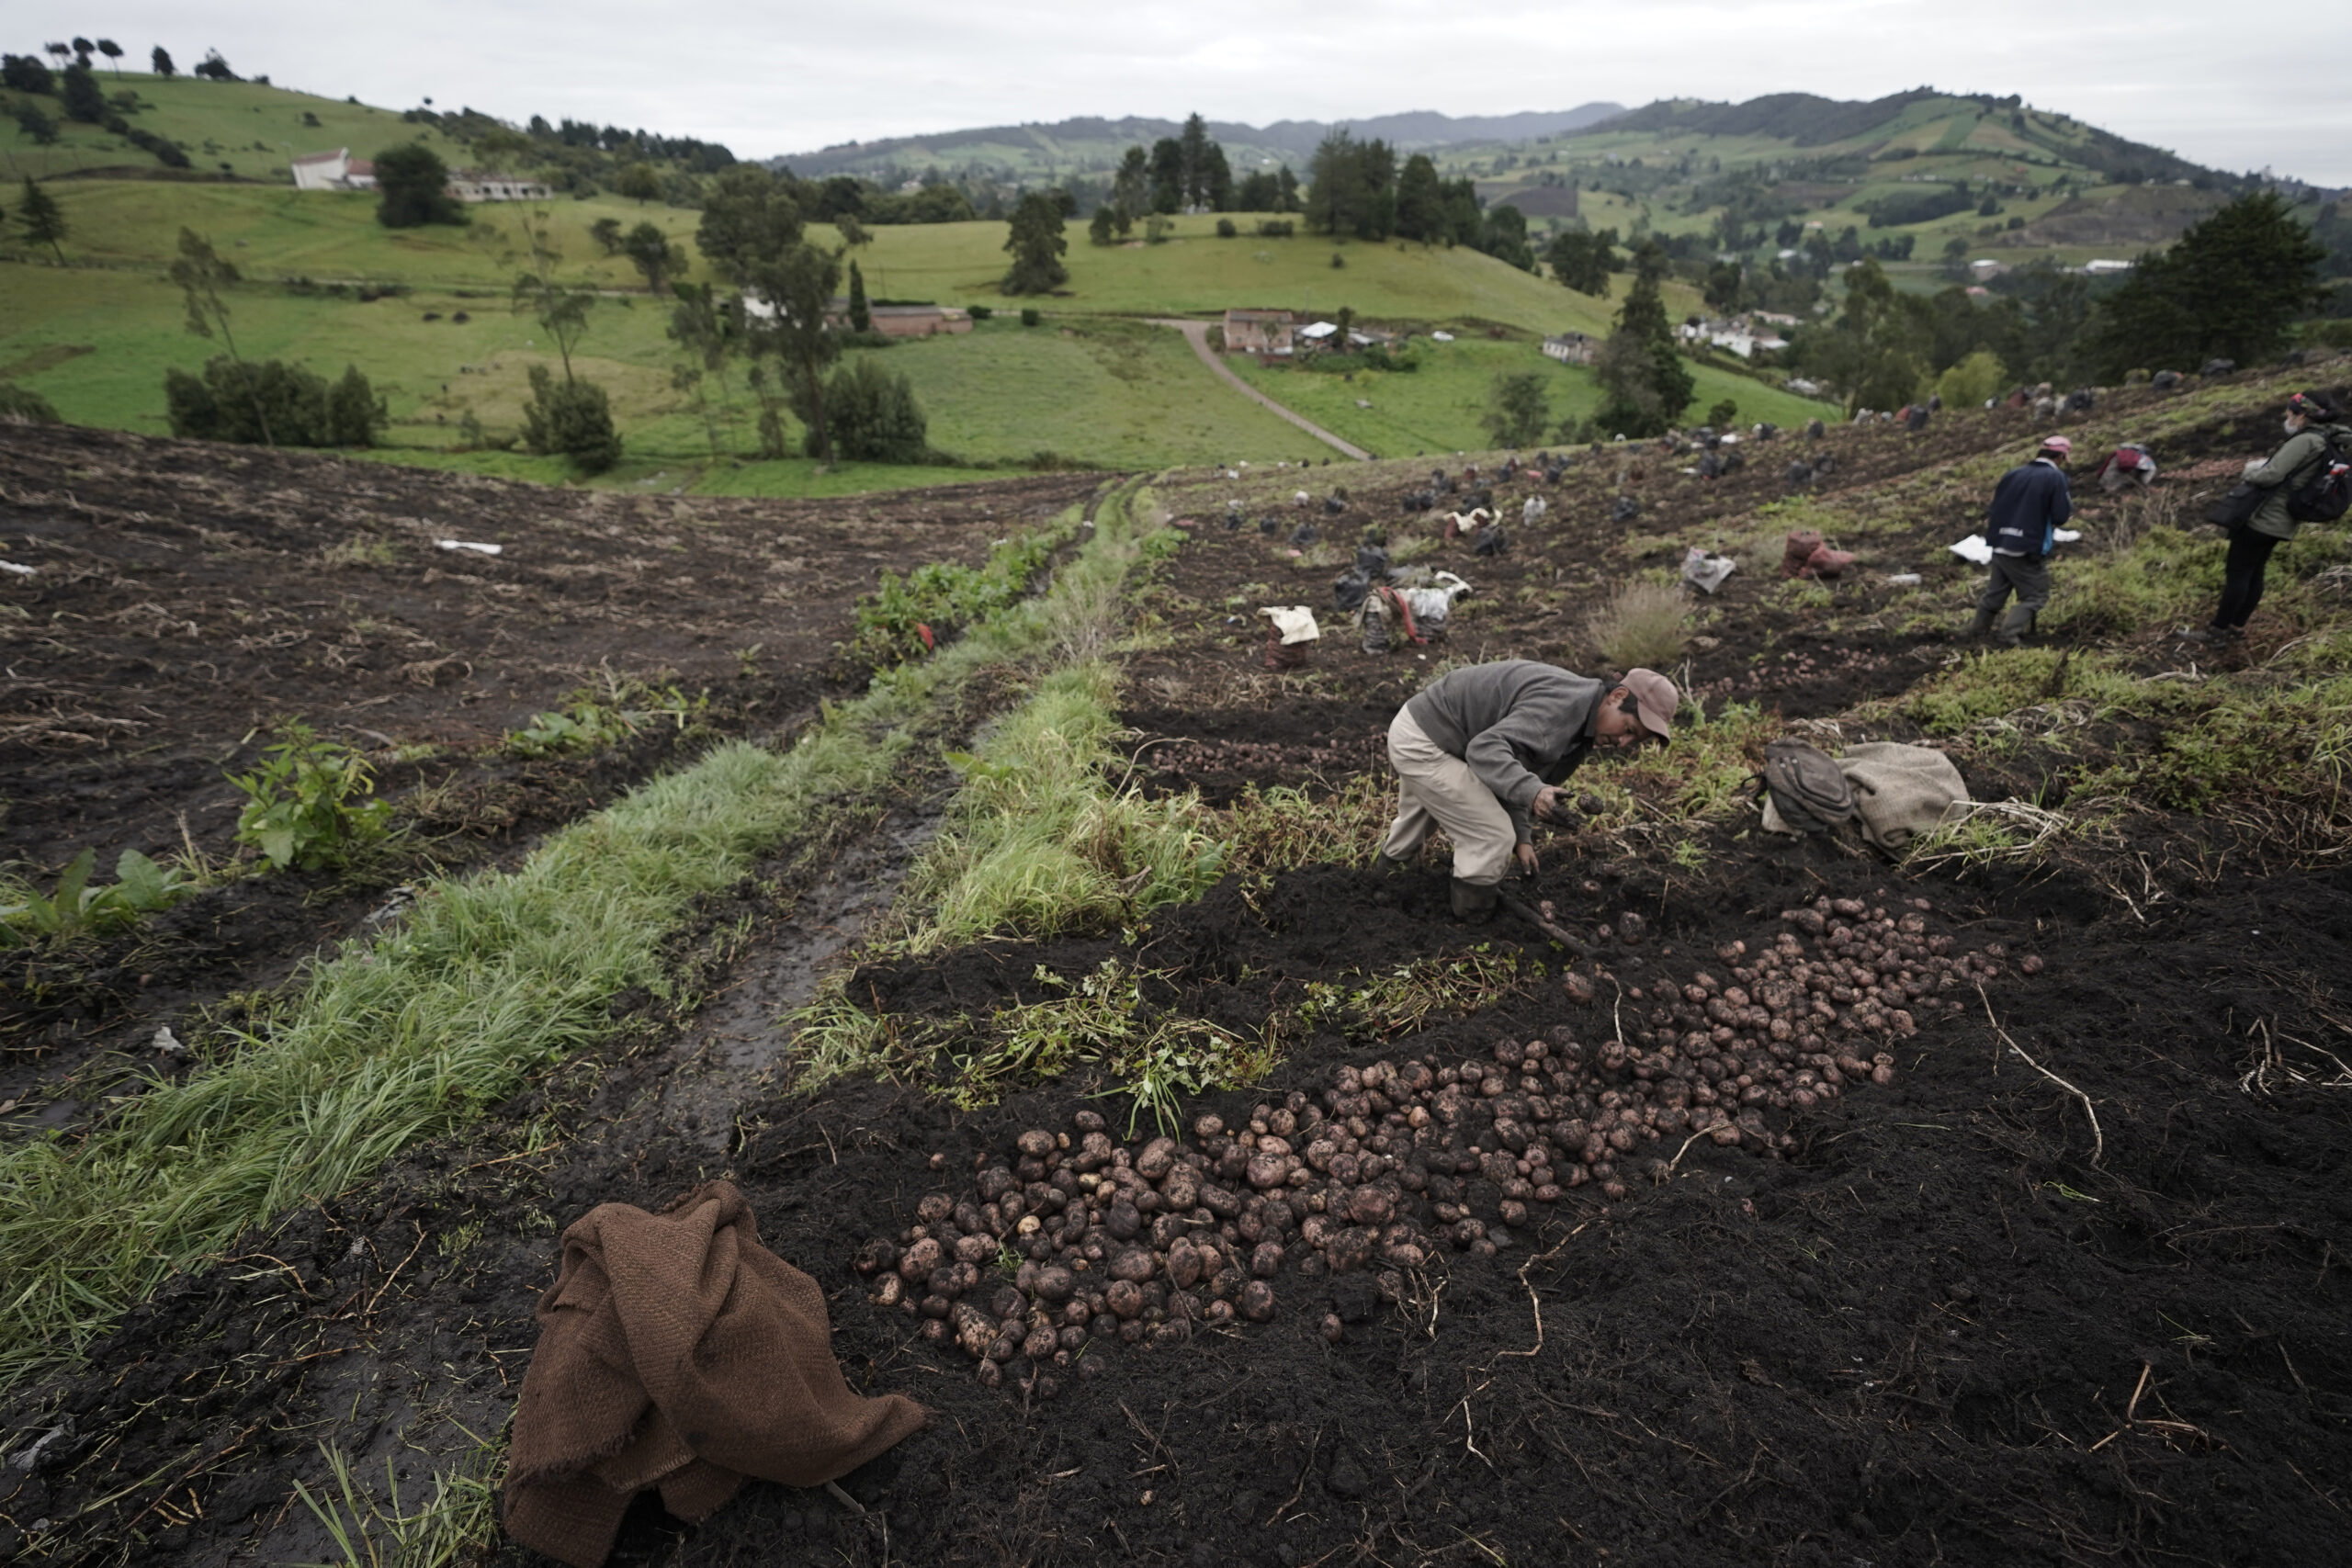 Farmers work in their crops of potato on November 13, 2020 in Ventaquemada, Colombia. Credit: Diego Cuevas/Vizzor Image/Getty Images